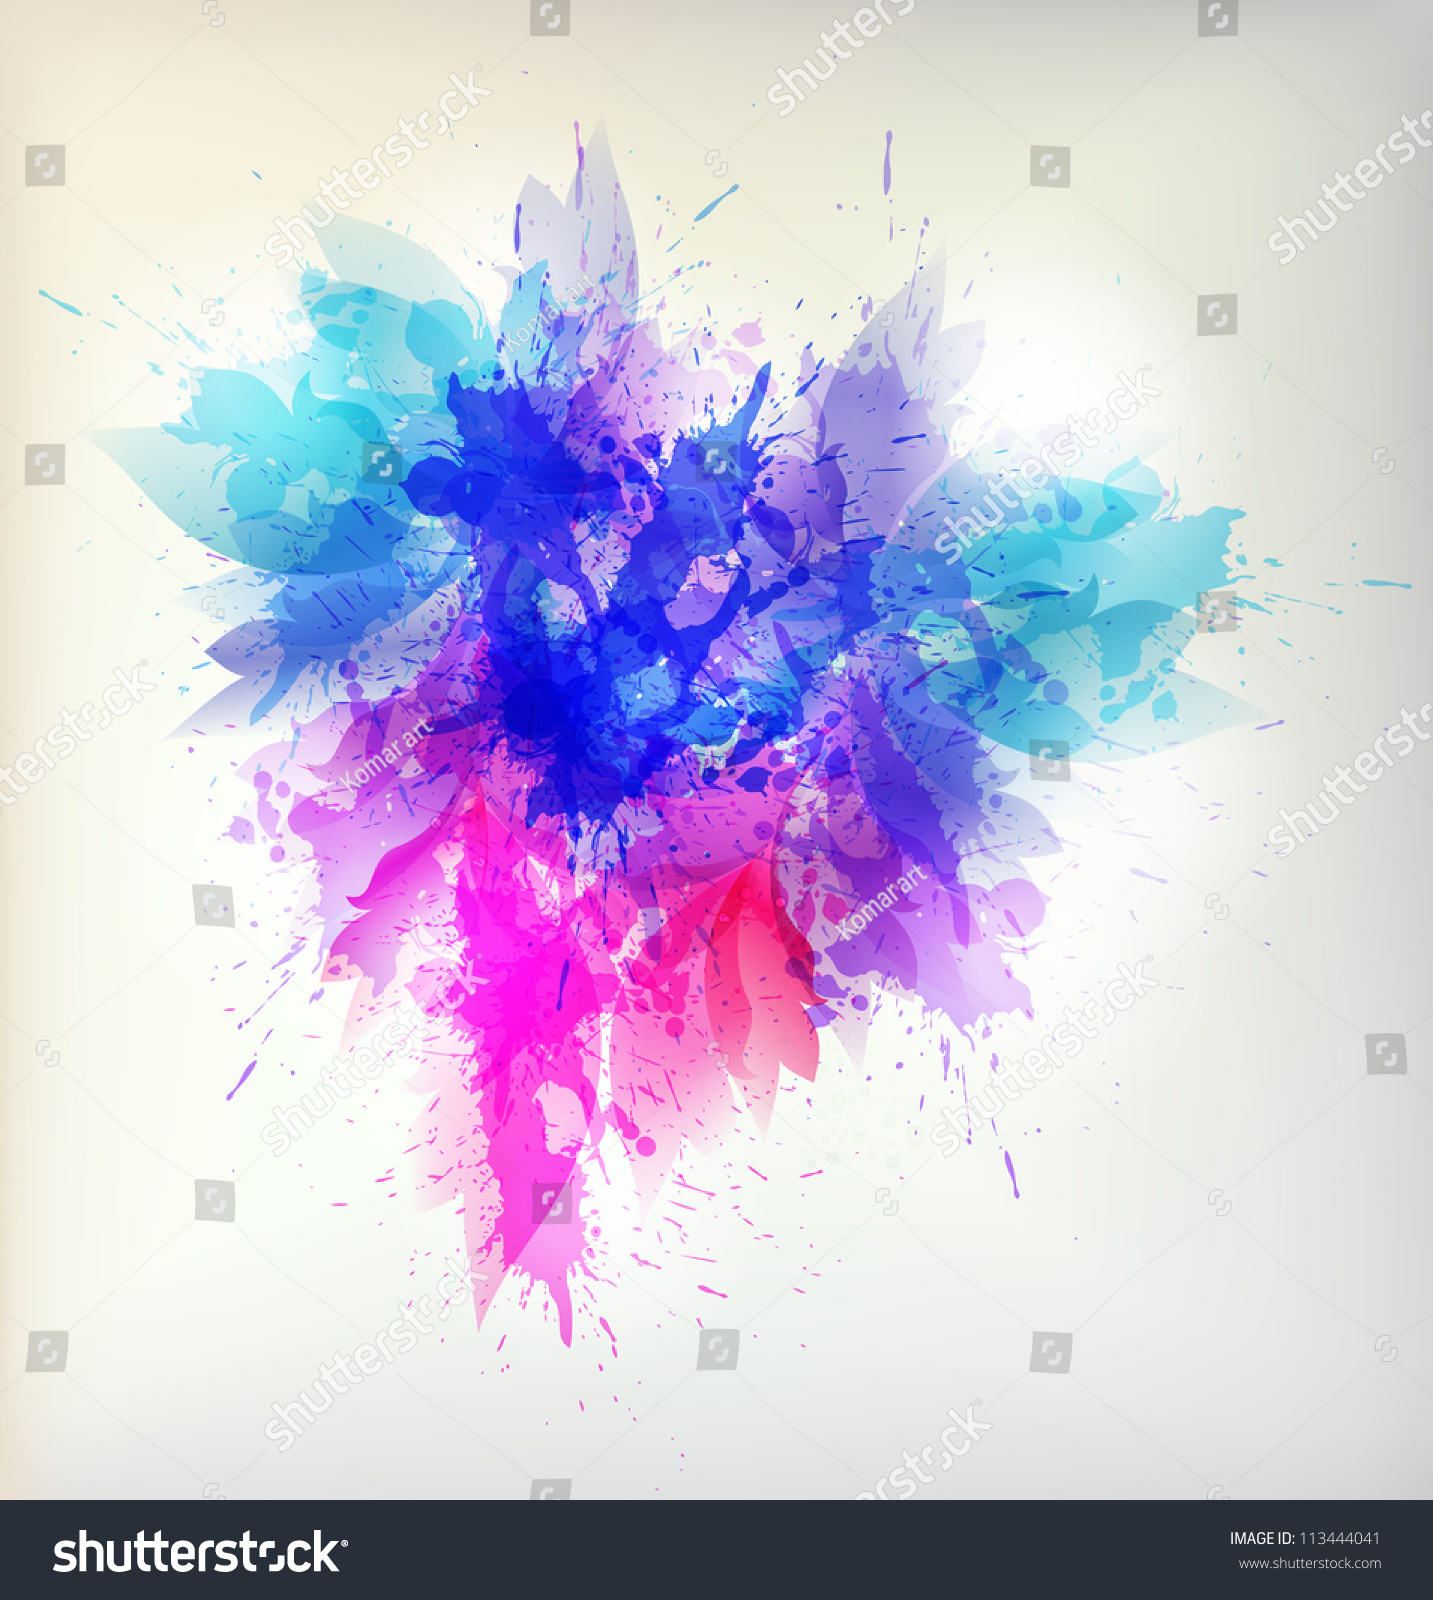 Abstract Flower Background With Decoration Elements For: Abstract Artistic Background Floral Element Colorful Stock